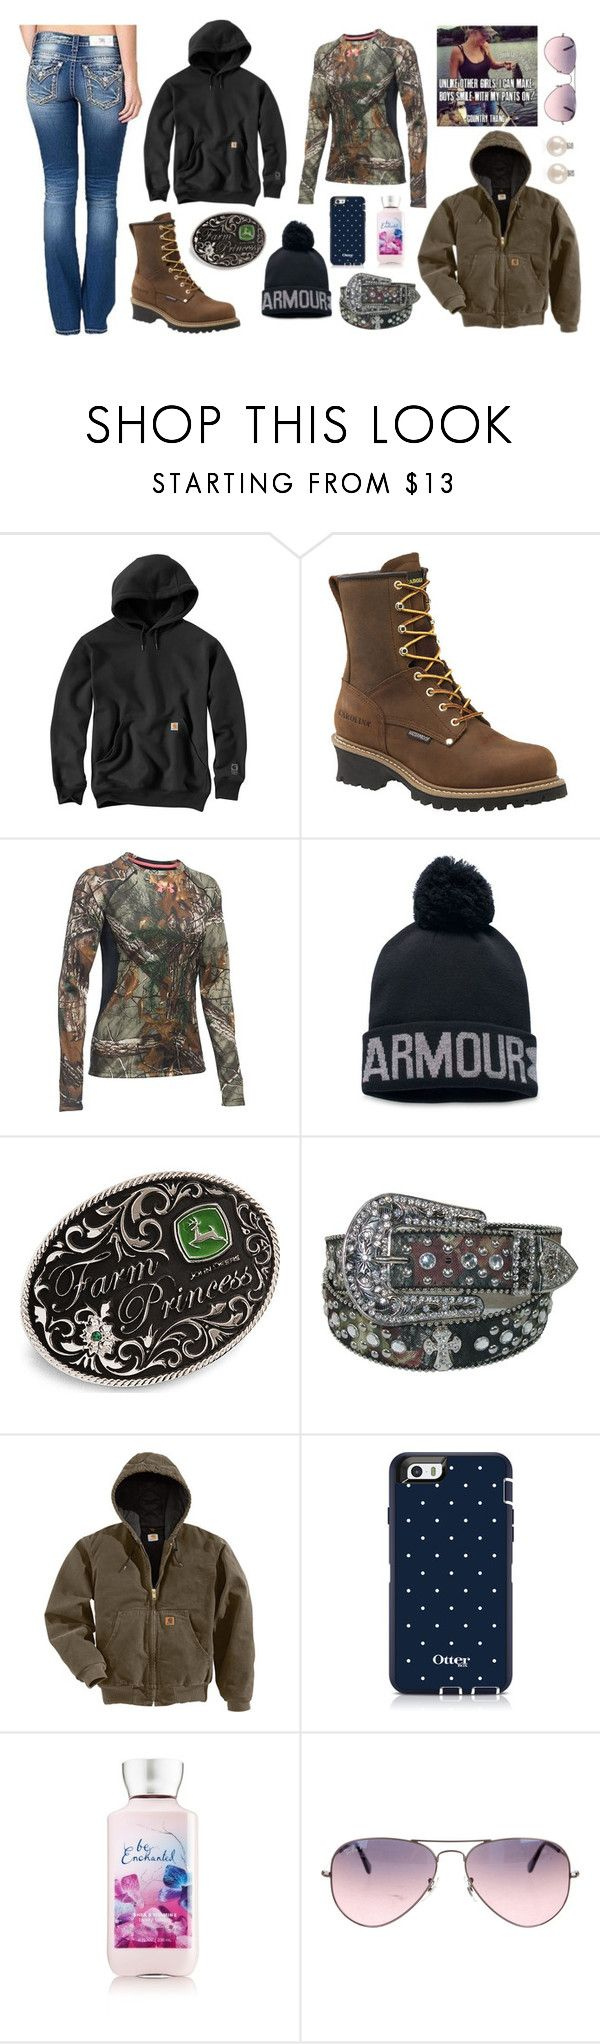 """Getting Cold Out There"" by im-a-jeans-and-boots-kinda-girl ❤ liked on Polyvore featuring Carhartt, Carolina, Under Armour, John Deere, Ray-Ban and Forzieri"